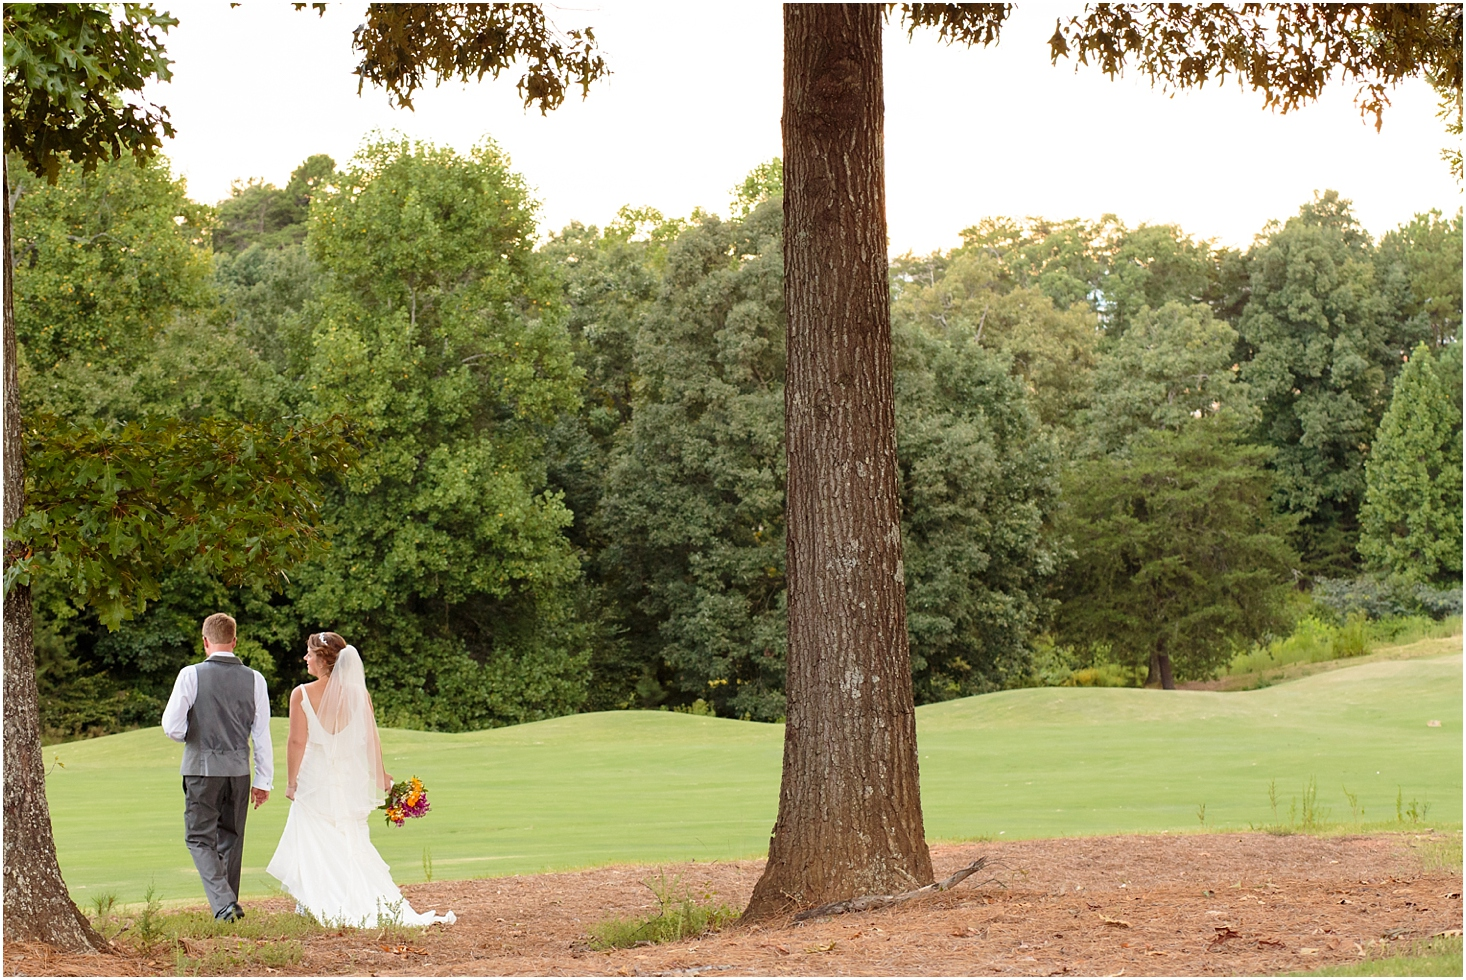 greenville-outdoor-wedding-embassy-suites-verdae-51_blog.jpg